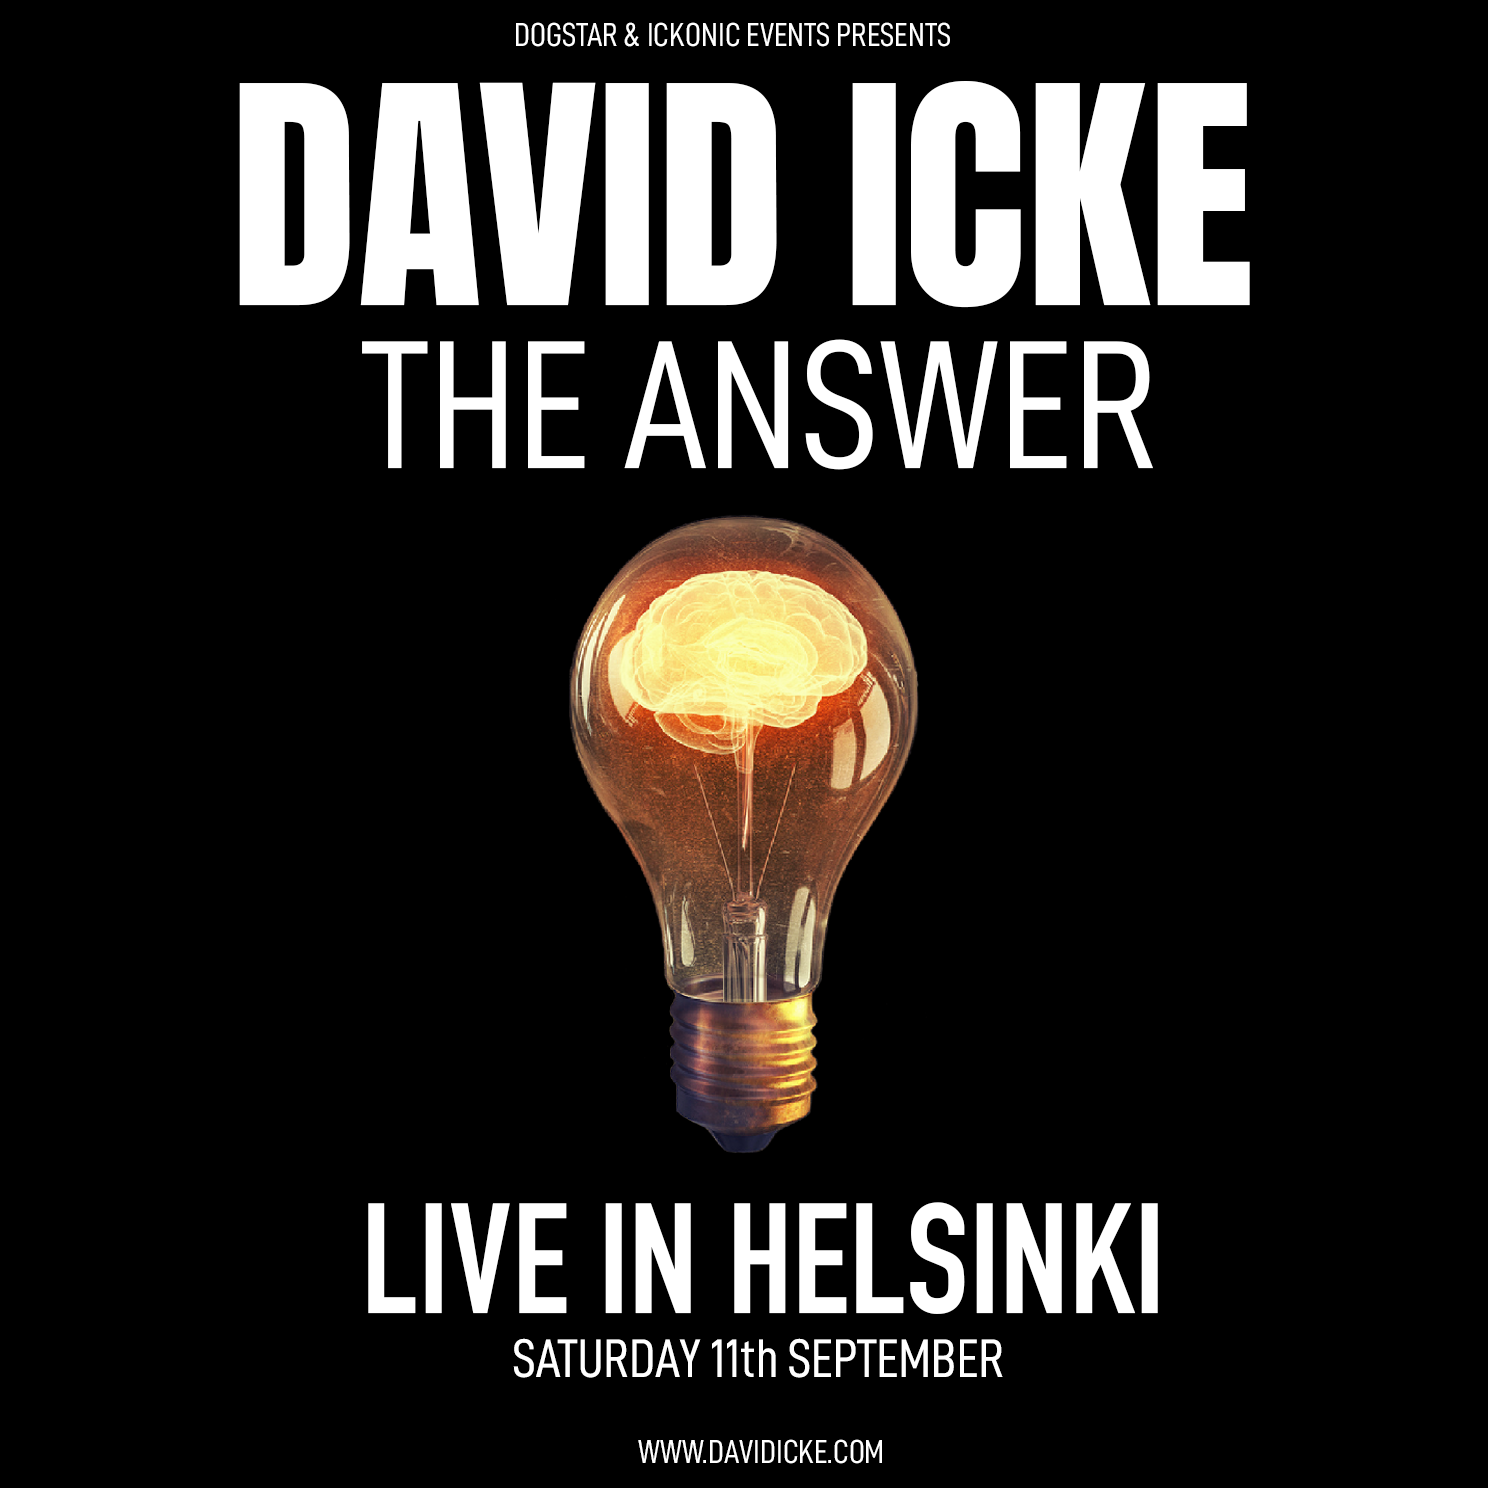 David Icke - Live In Helsinki - The Answer - Saturday 11th September